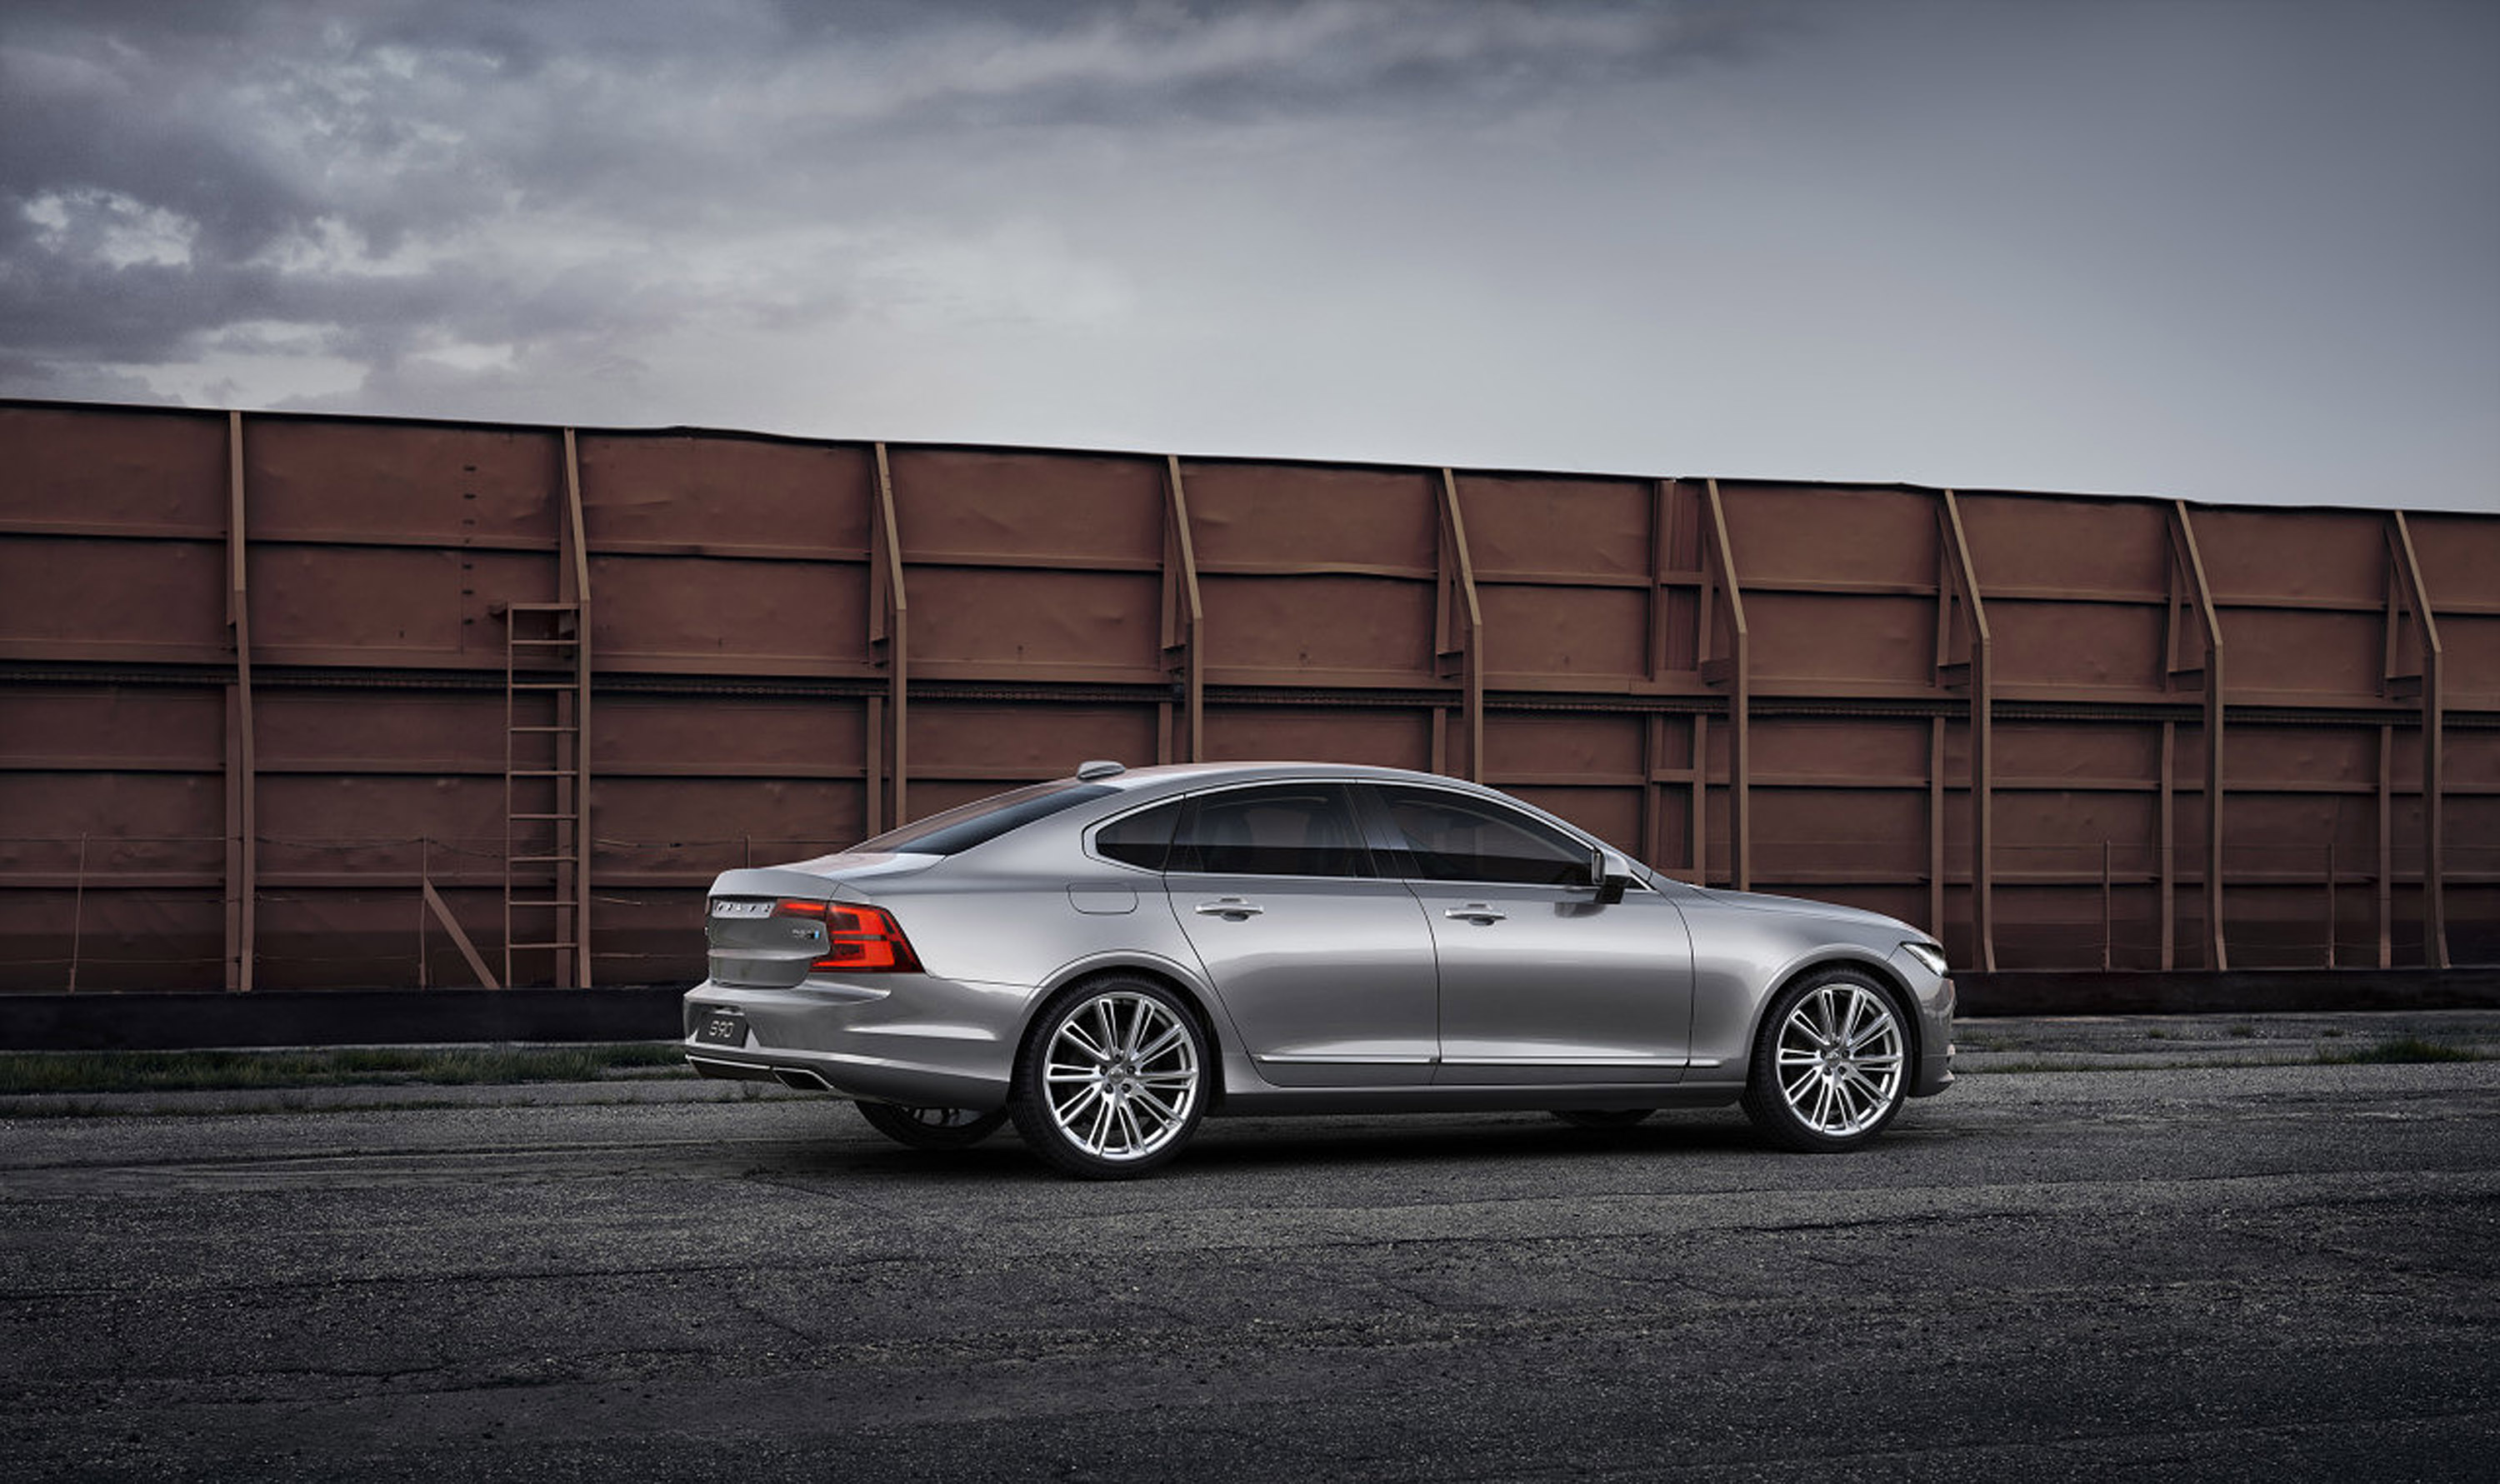 Polestar upgrades are available for Volvo S90 and V90 models